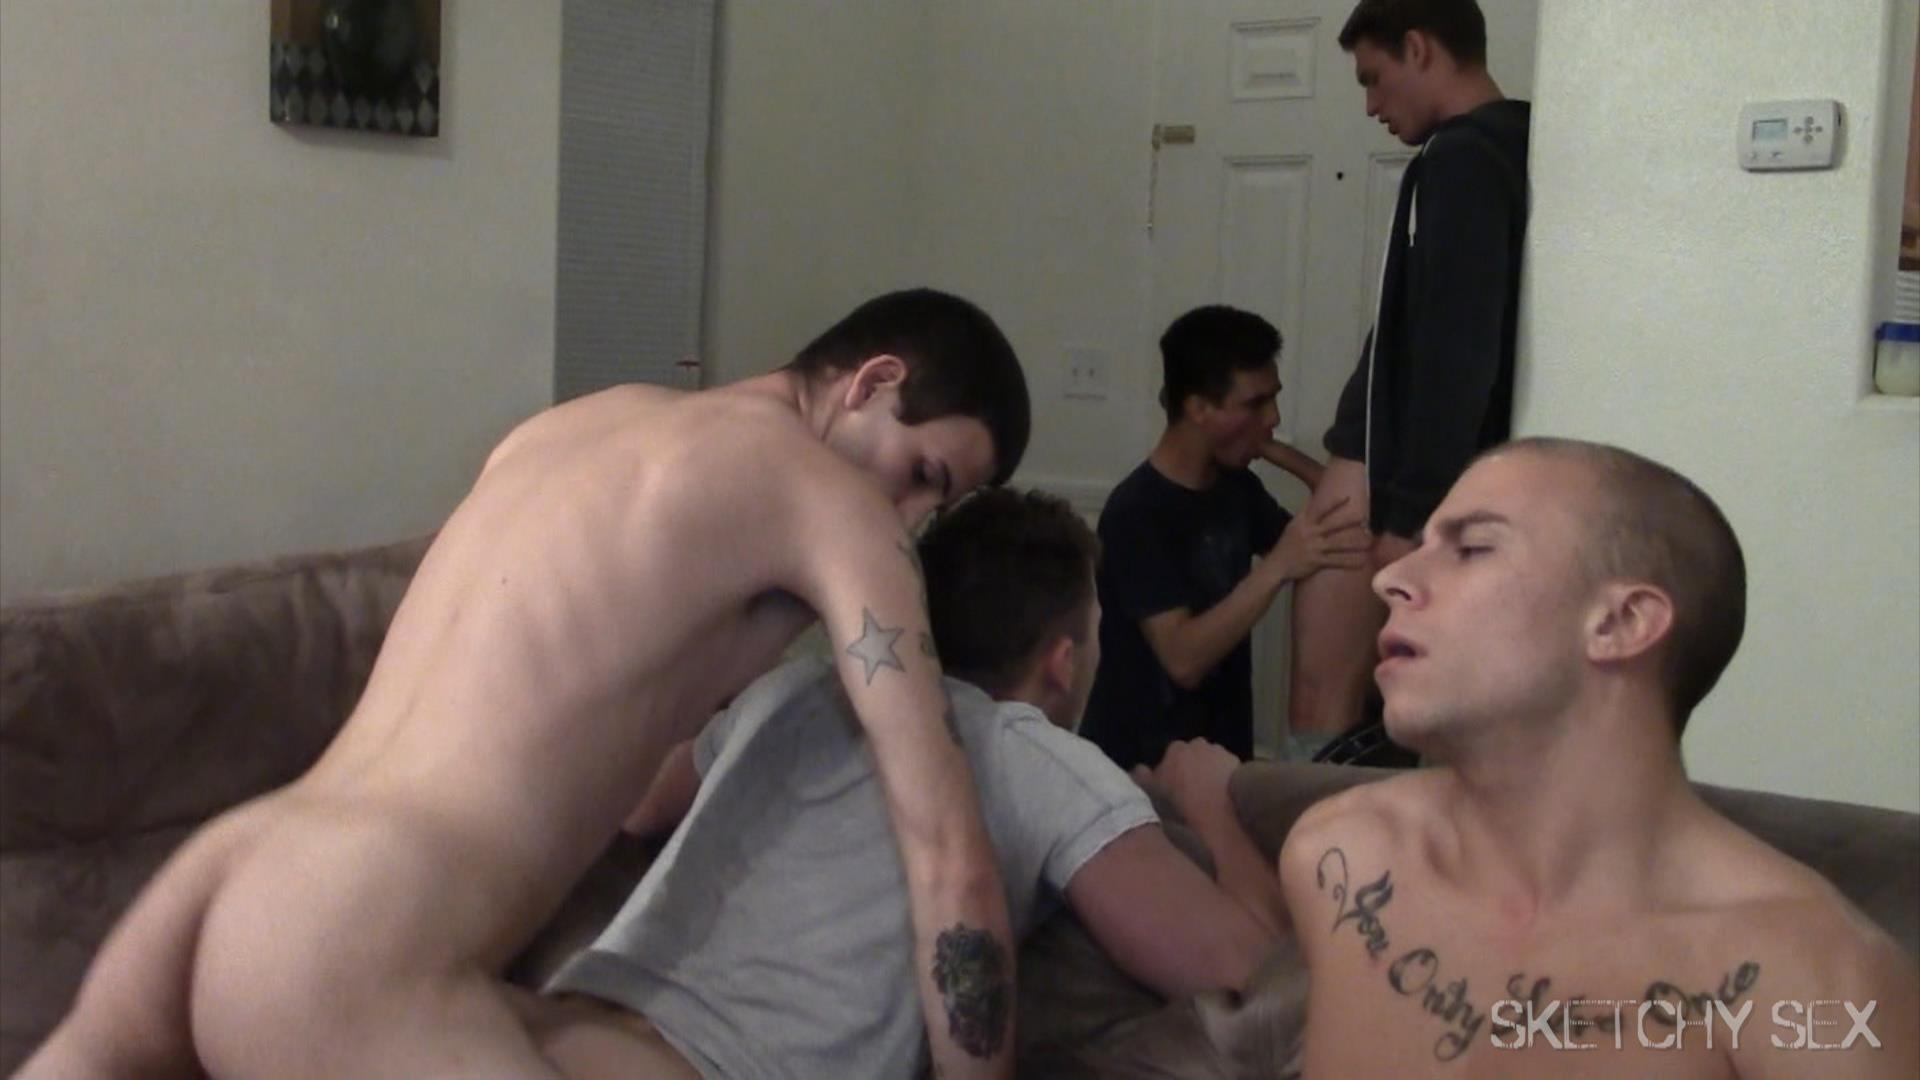 Sketchy Sex Bareback Breeding Party Amateur Gay Porn 17 Hosting An Anonymous Bareback Breeding Party